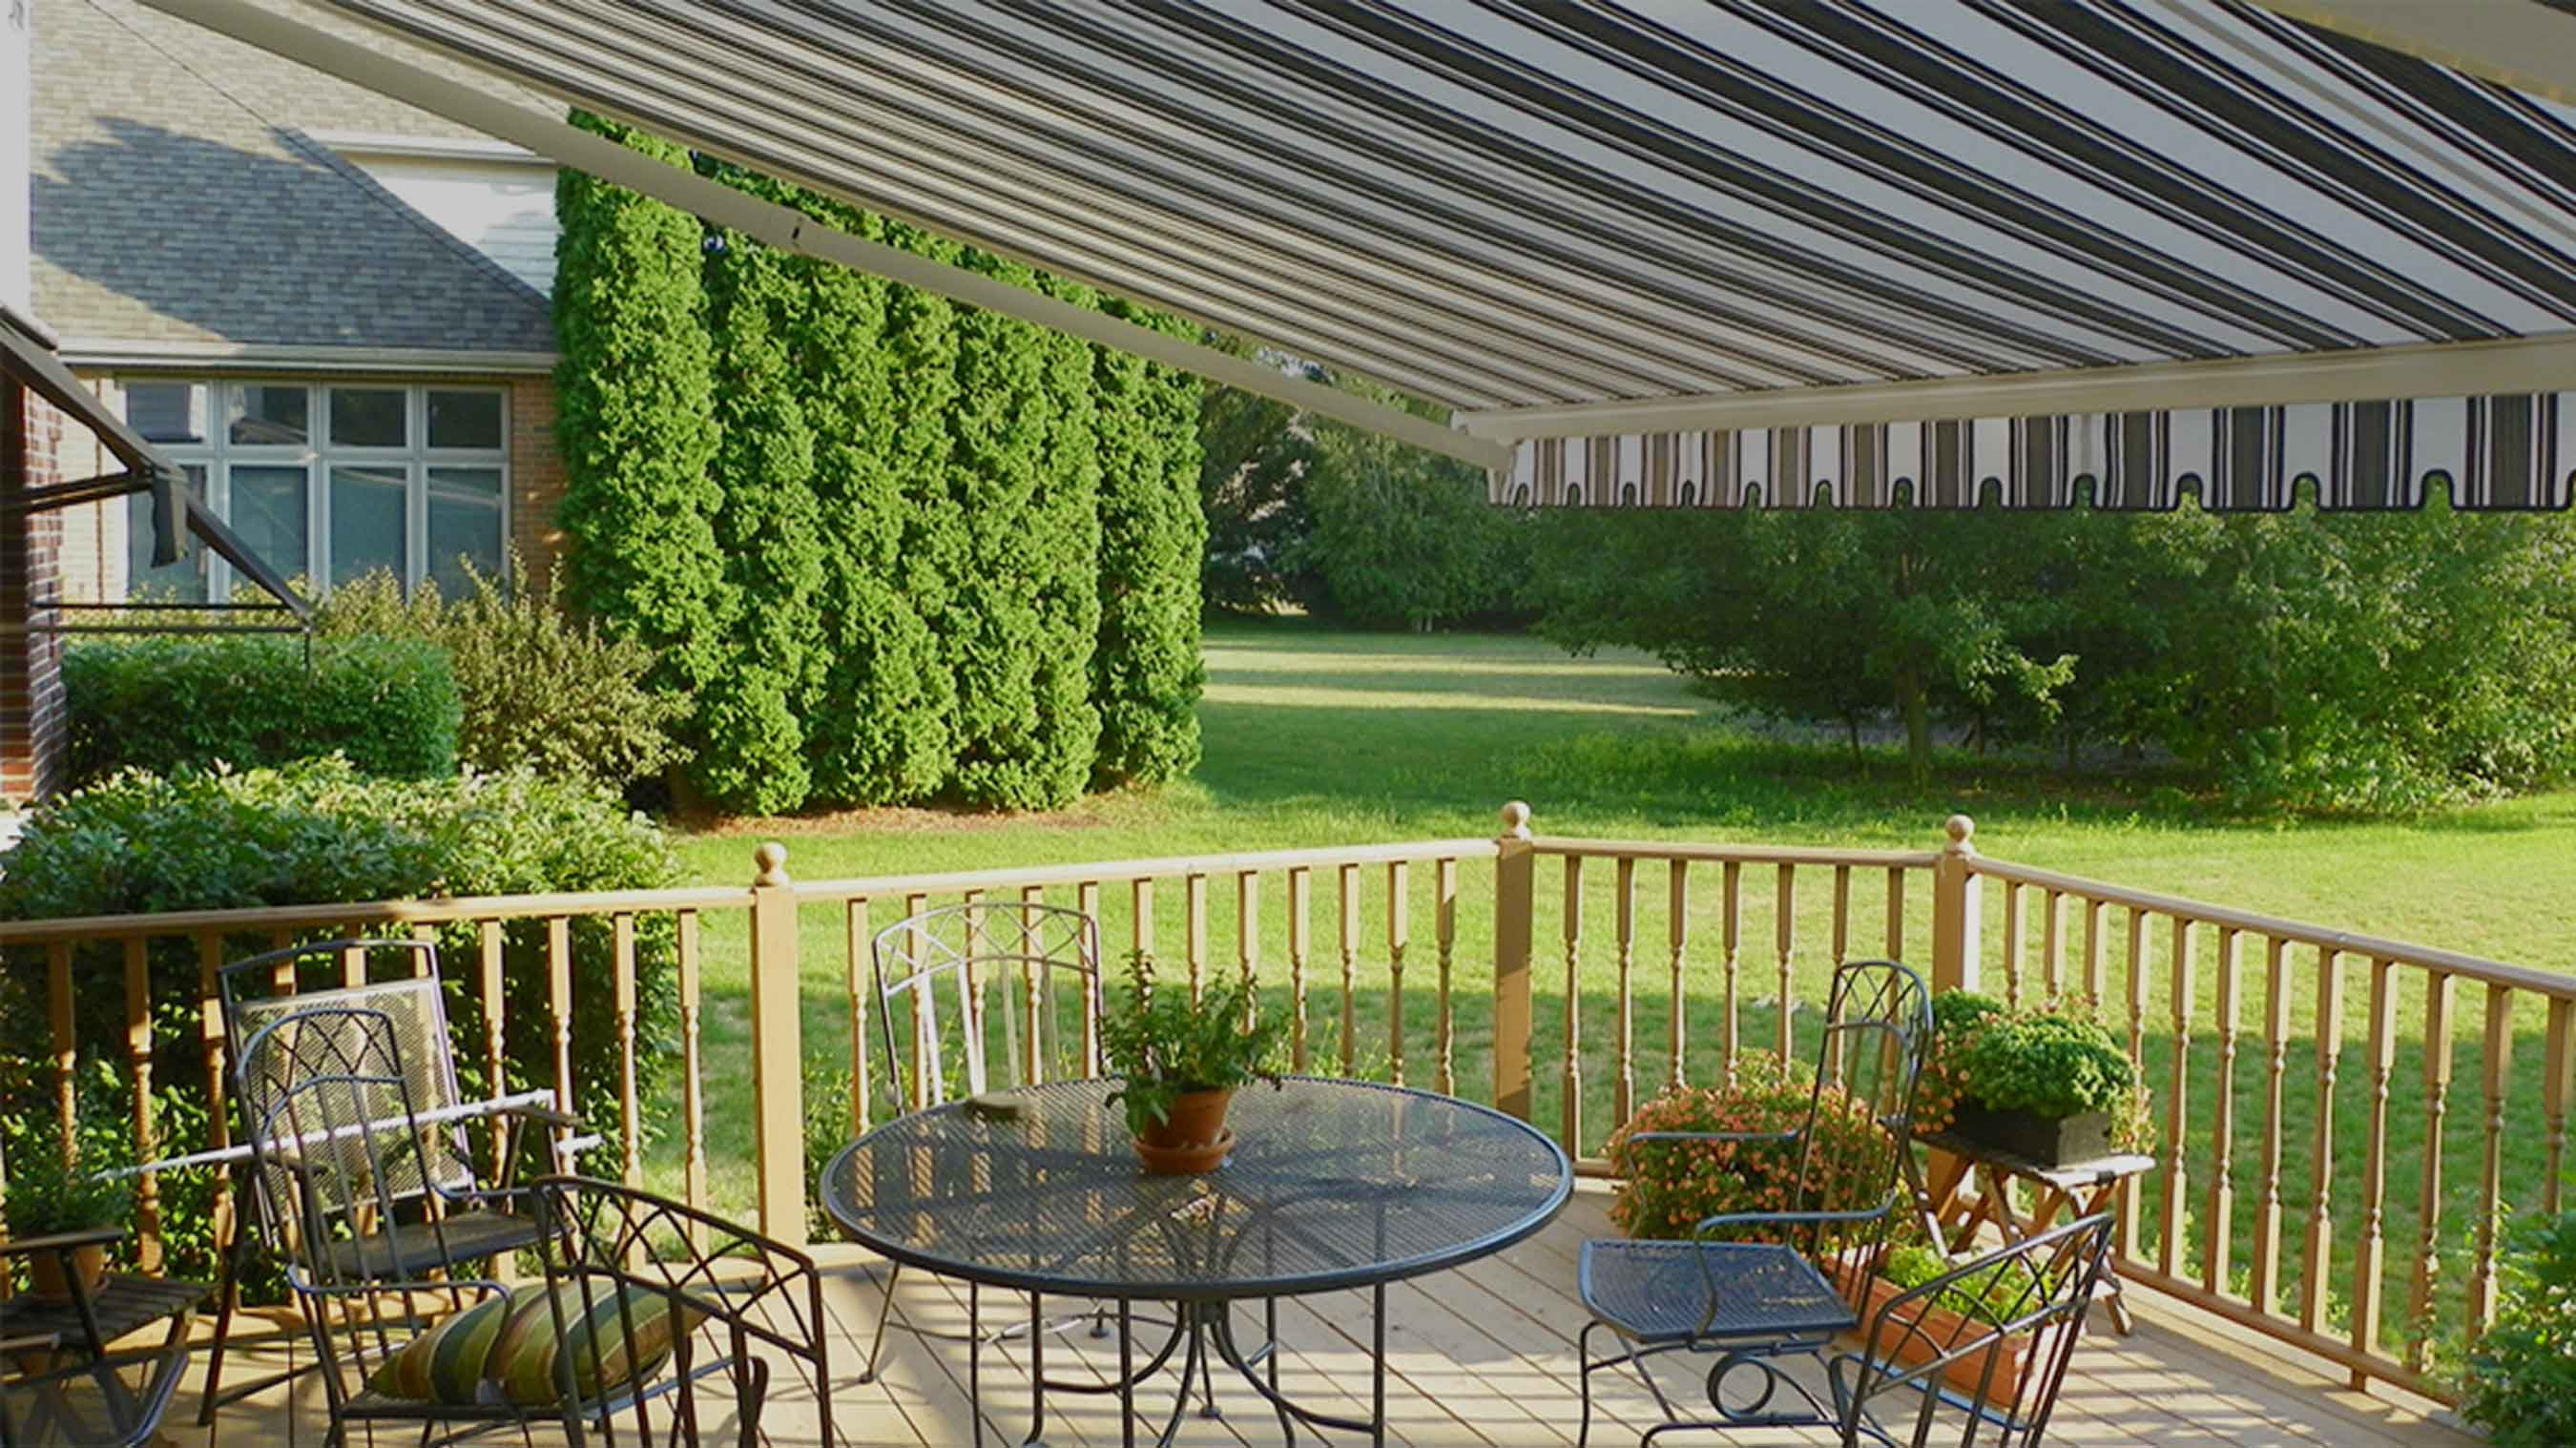 Chesterfield Awning : Awnings and Canopies in Chicago ...